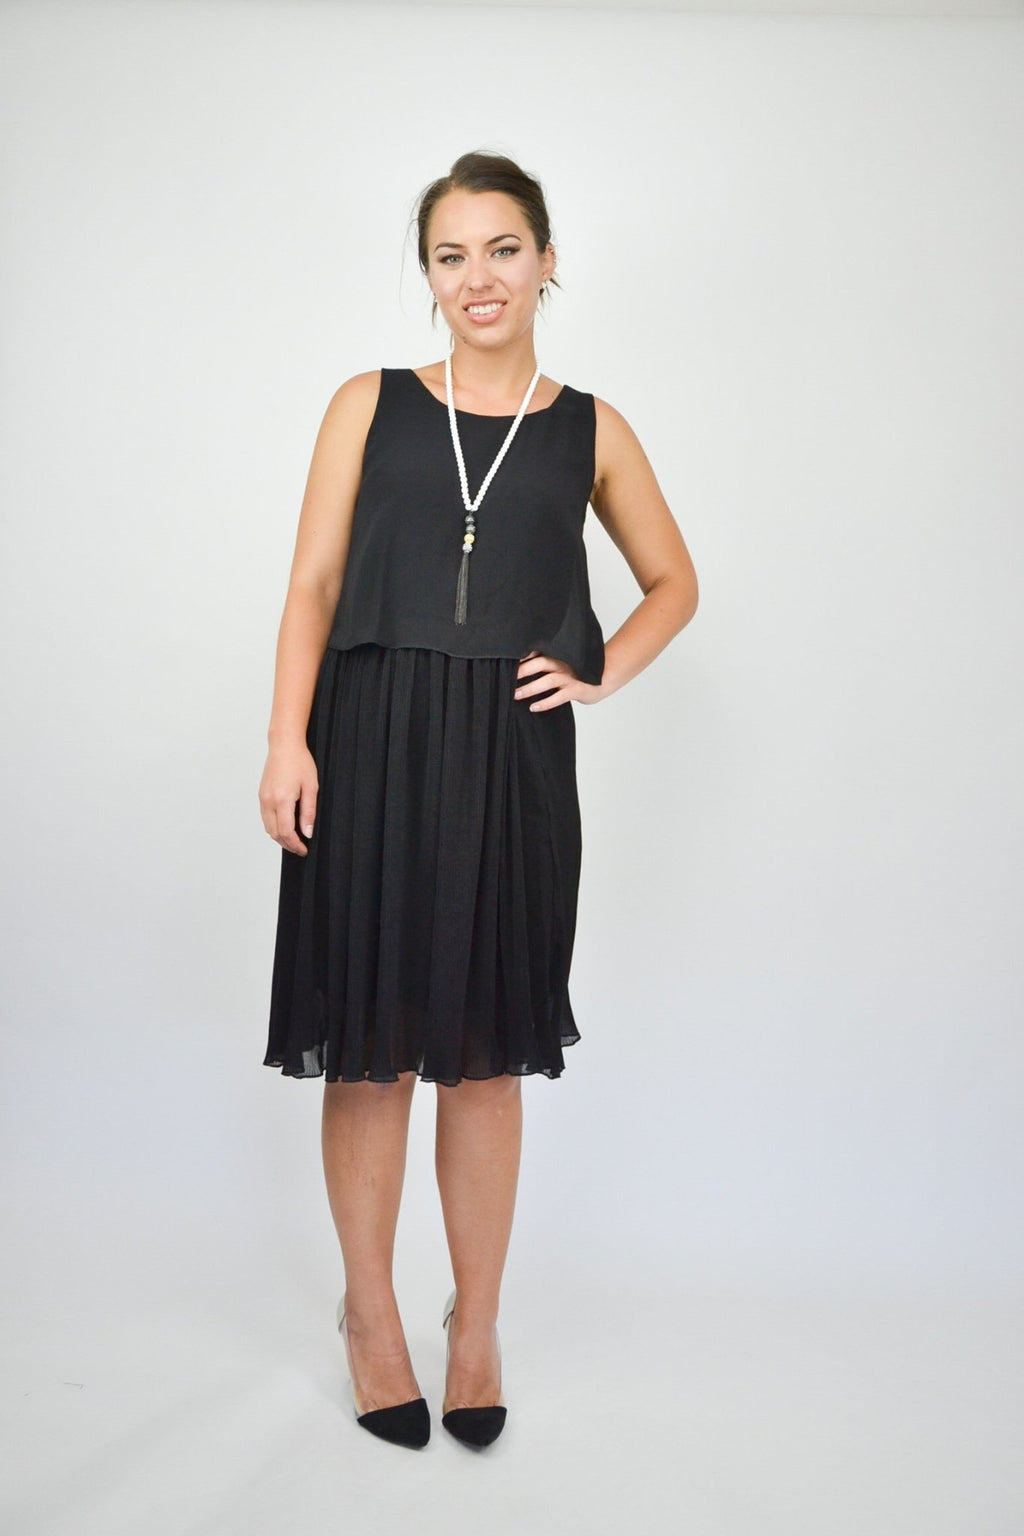 PLEAT BOTTOM DRESS - DRX9D33 - Ebony Boutique NZ